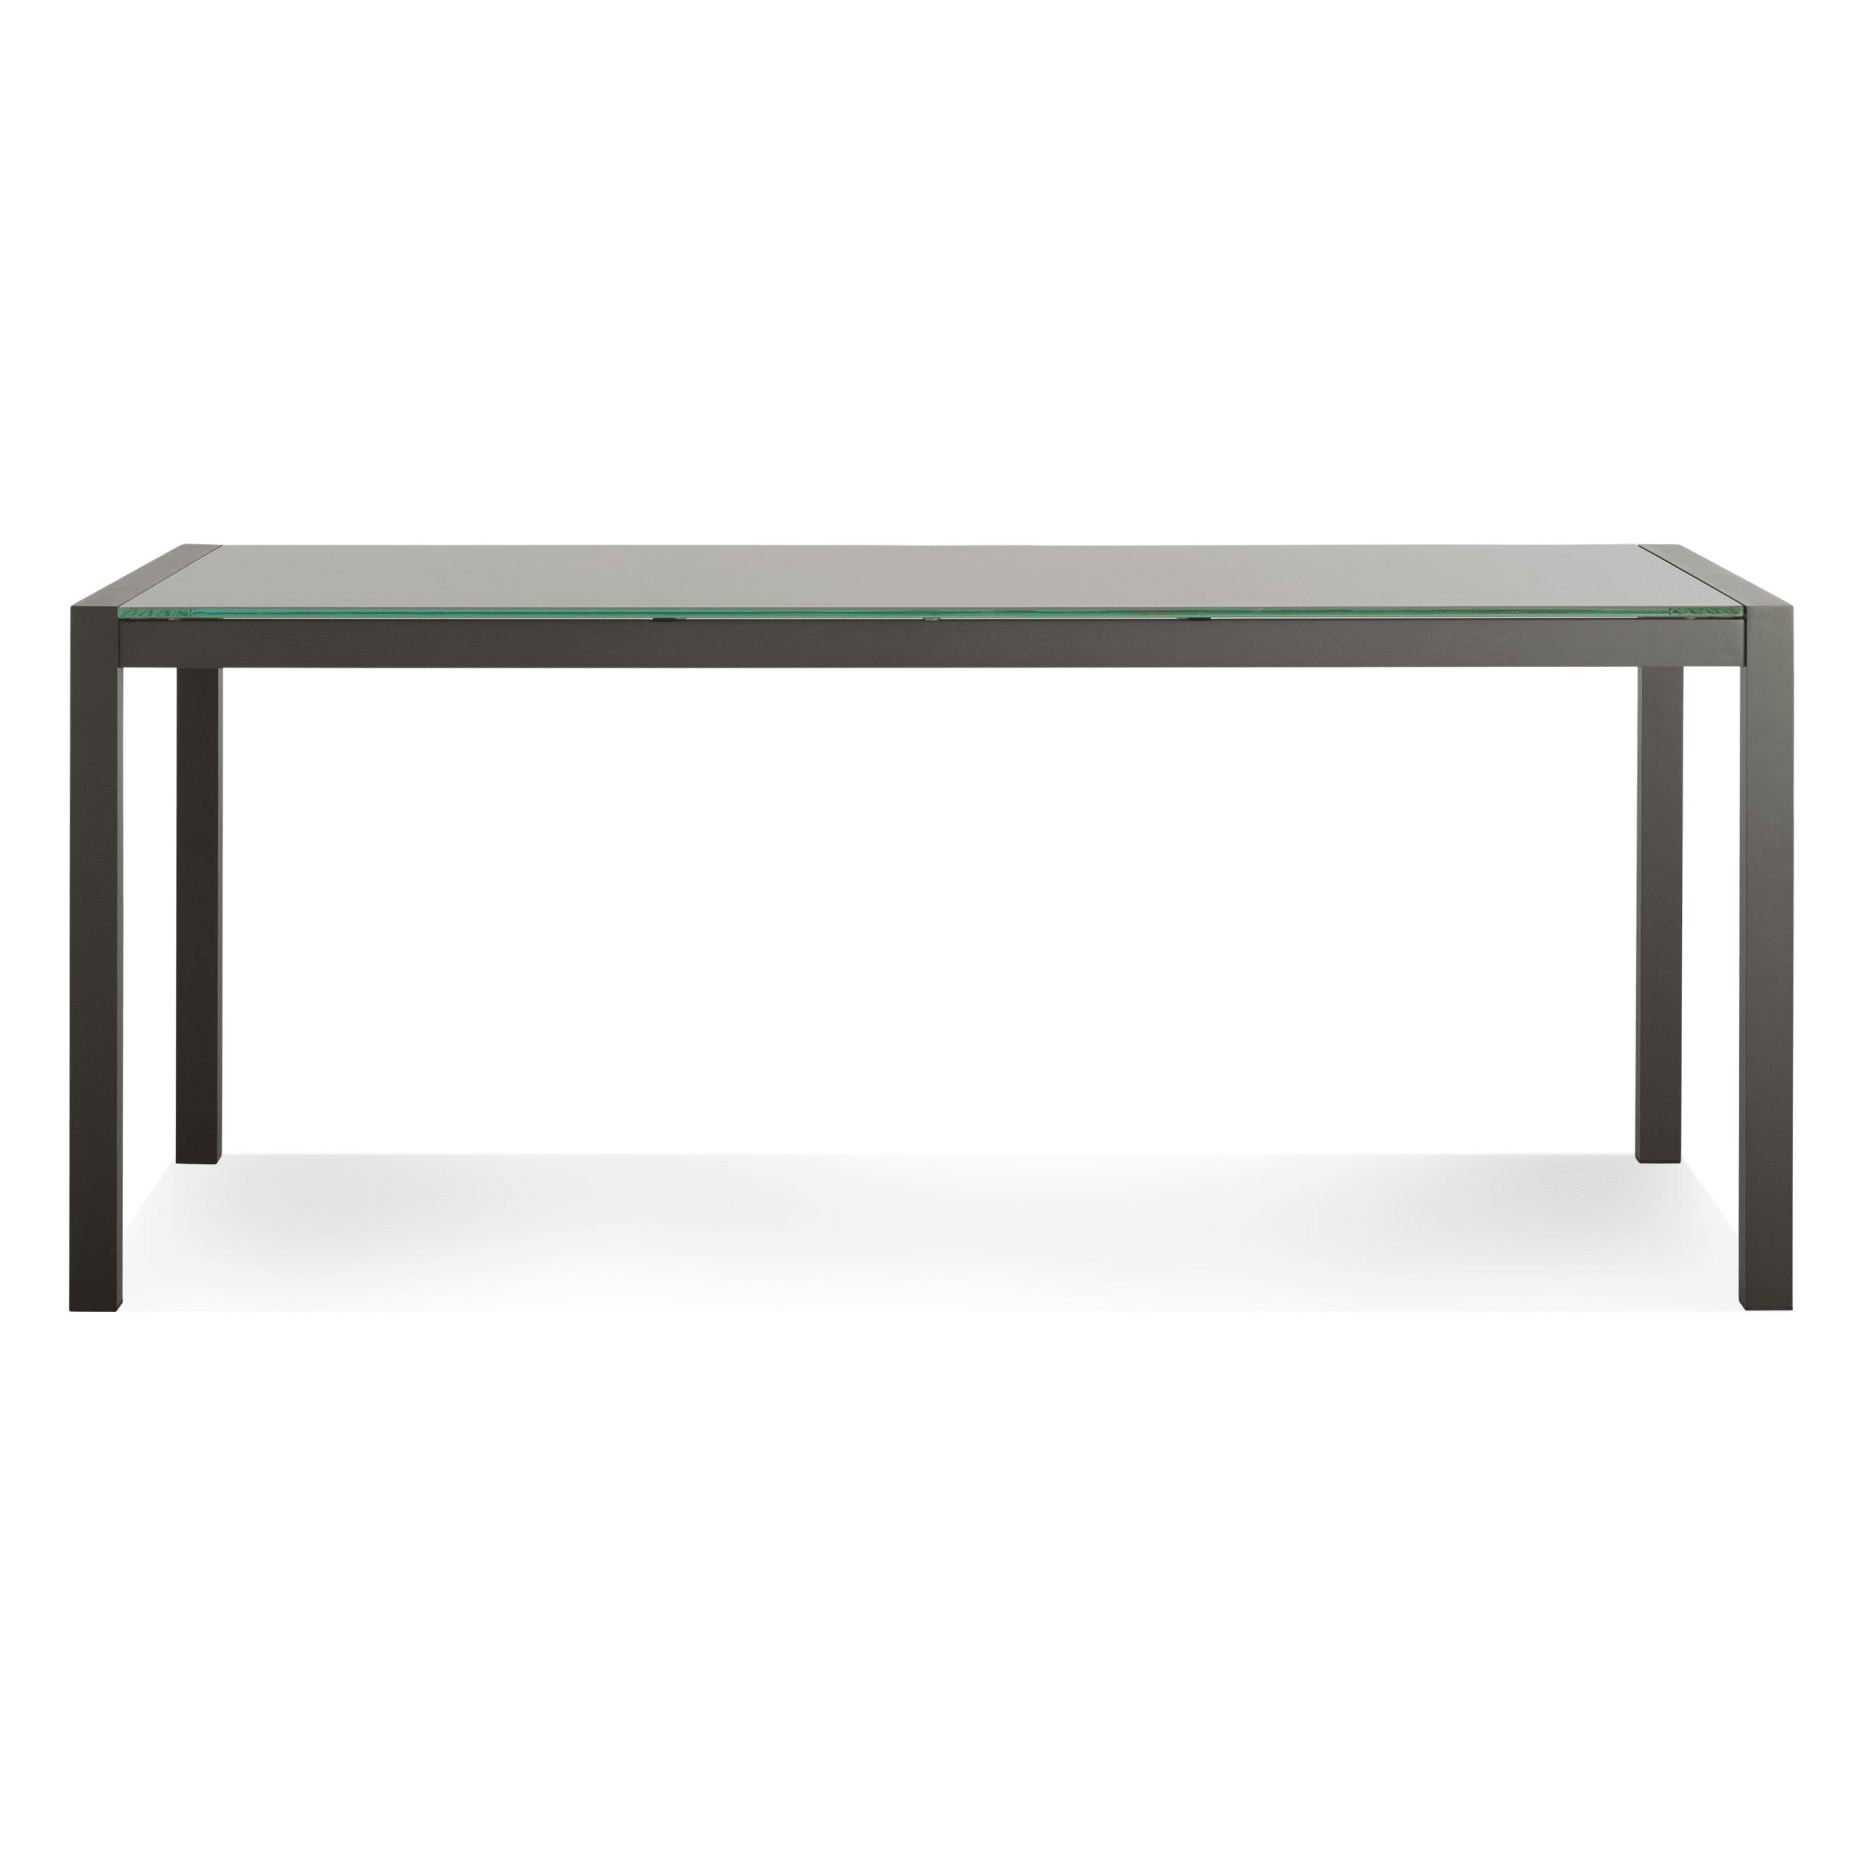 sk1 rctblec cb 9474 skiff rectangular outdoor table carbon